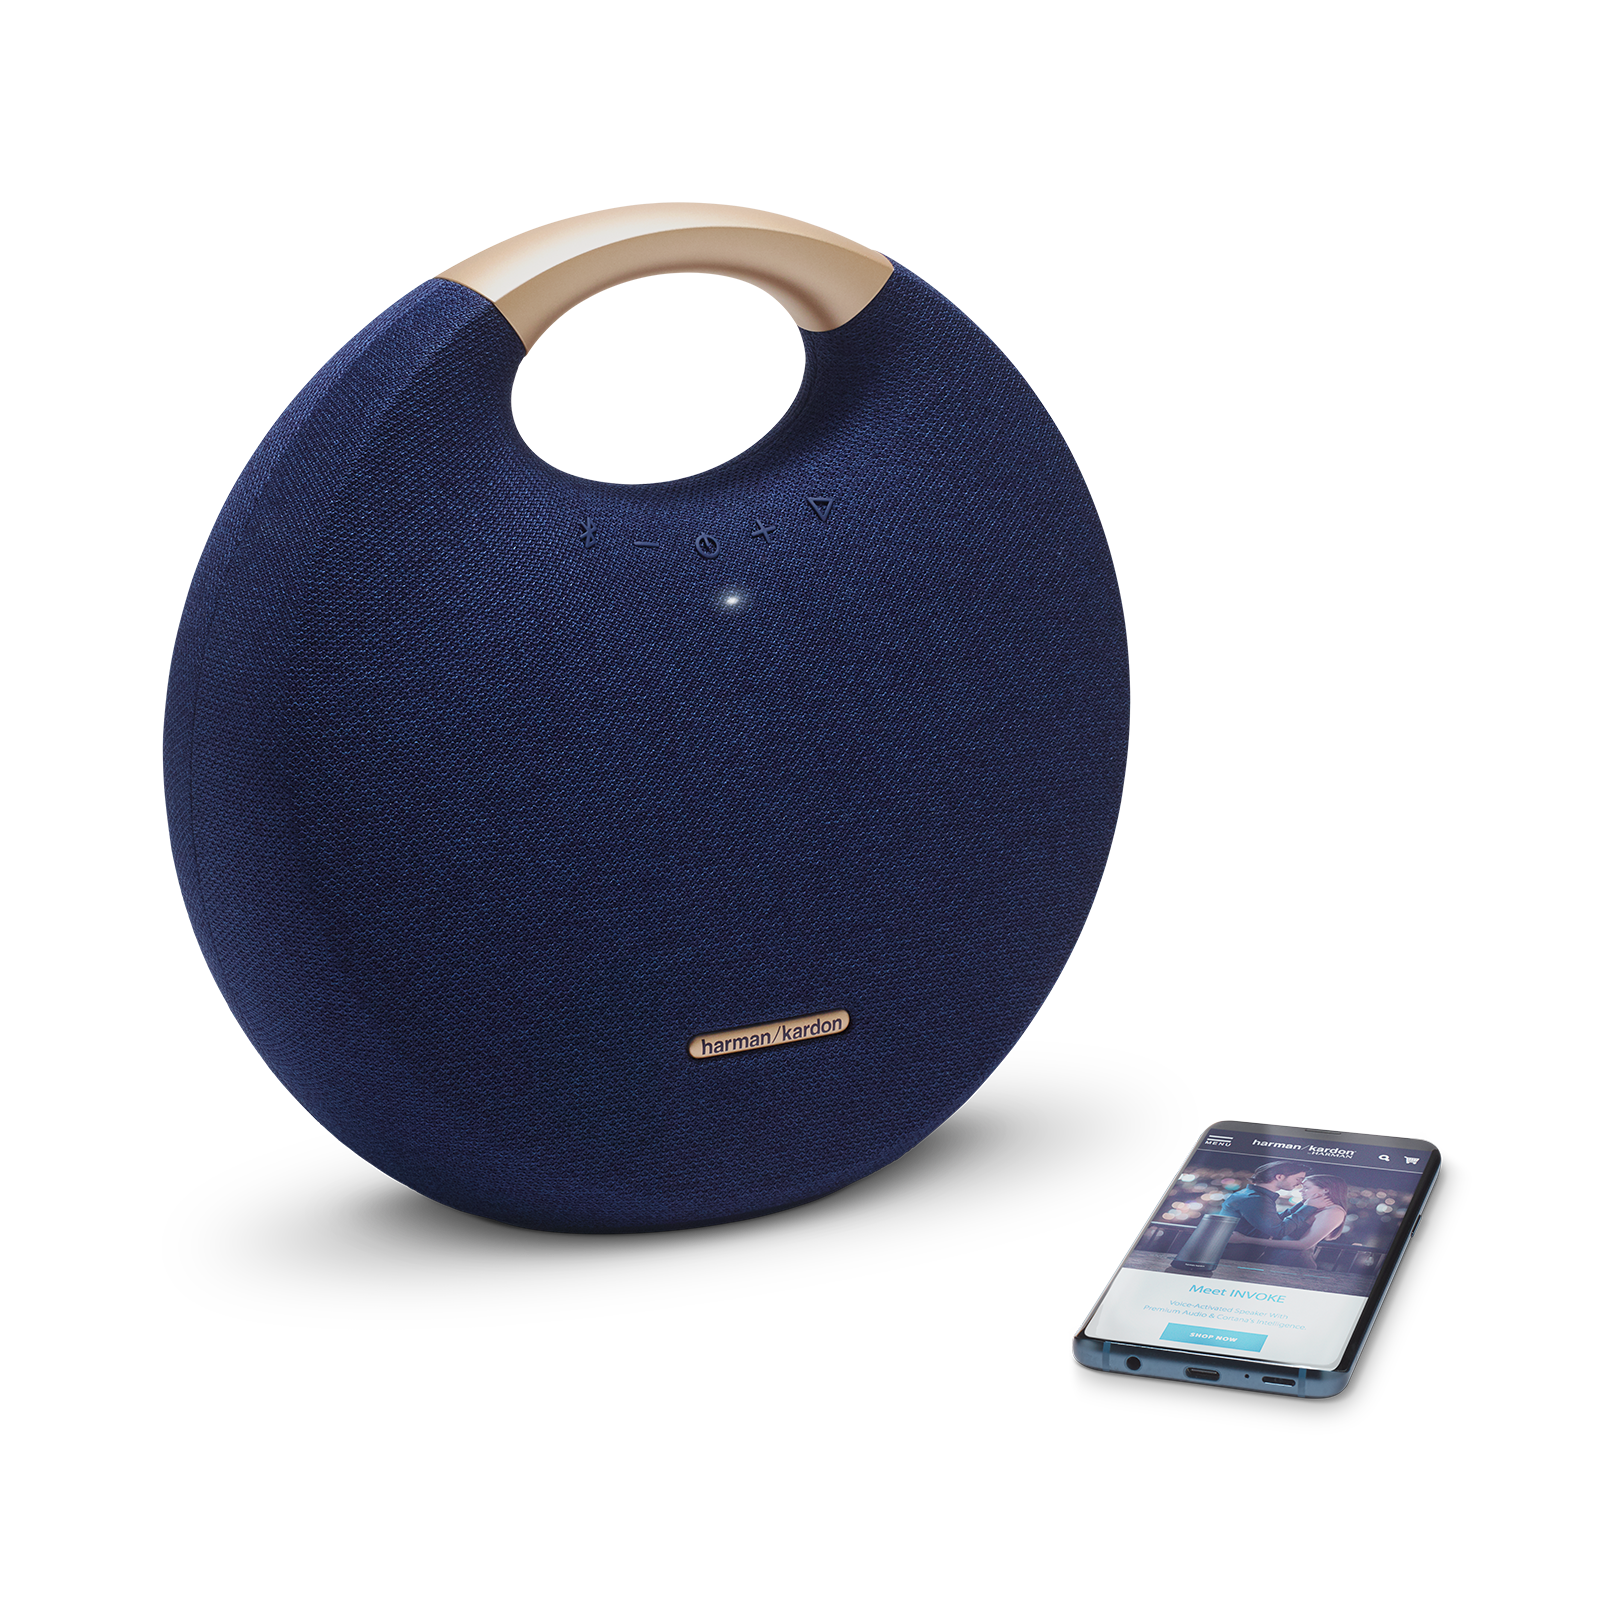 Onyx Studio 5 - Blue - Portable Bluetooth Speaker - Detailshot 1